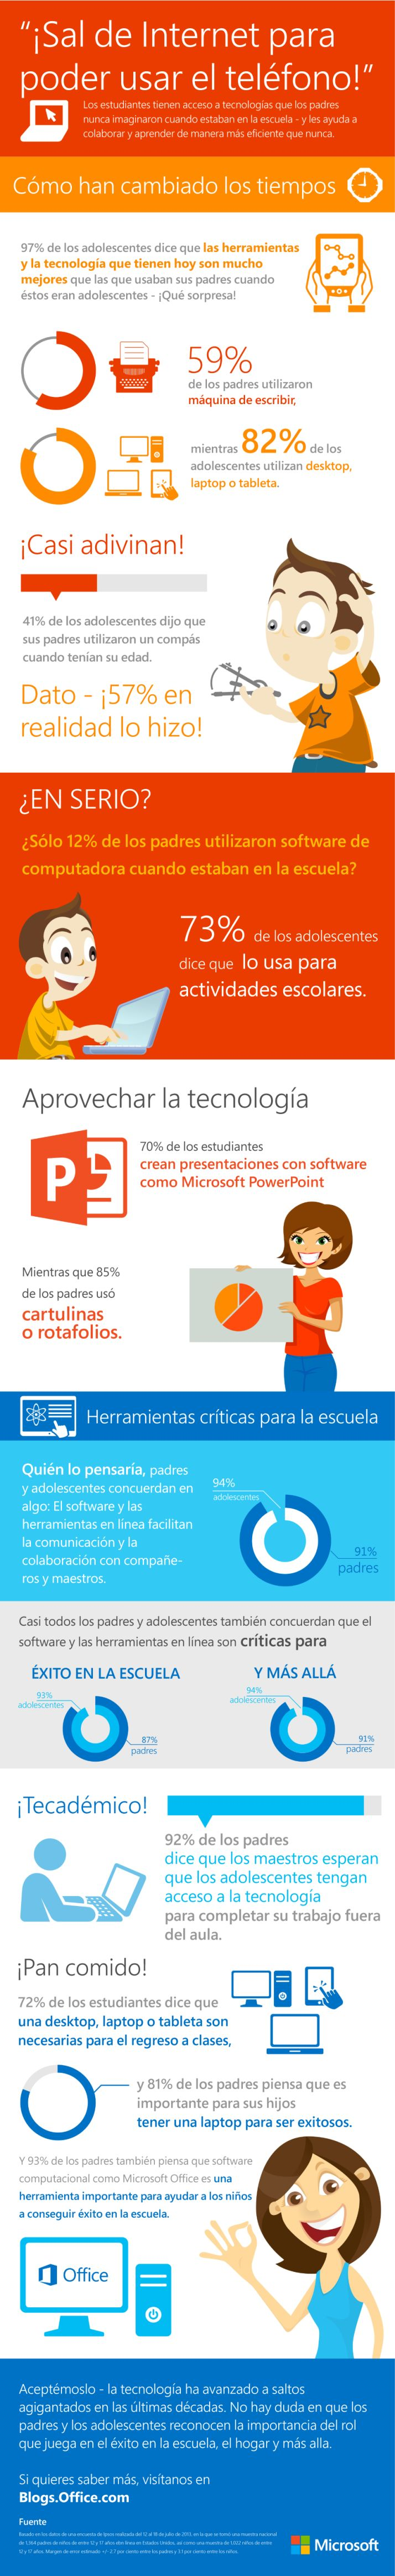 Qué hacían en la escuela cuando no existía la tecnología. Recursos educativos del siglo XX #infografias #infographics #escuela #educacion #tic #recursoseducativos: Classroom Resources, Classroom Infographic,  Internet Site, Things Edtech,  Website, Cole Ants, Web Site, Assistant Technology, Education Technology